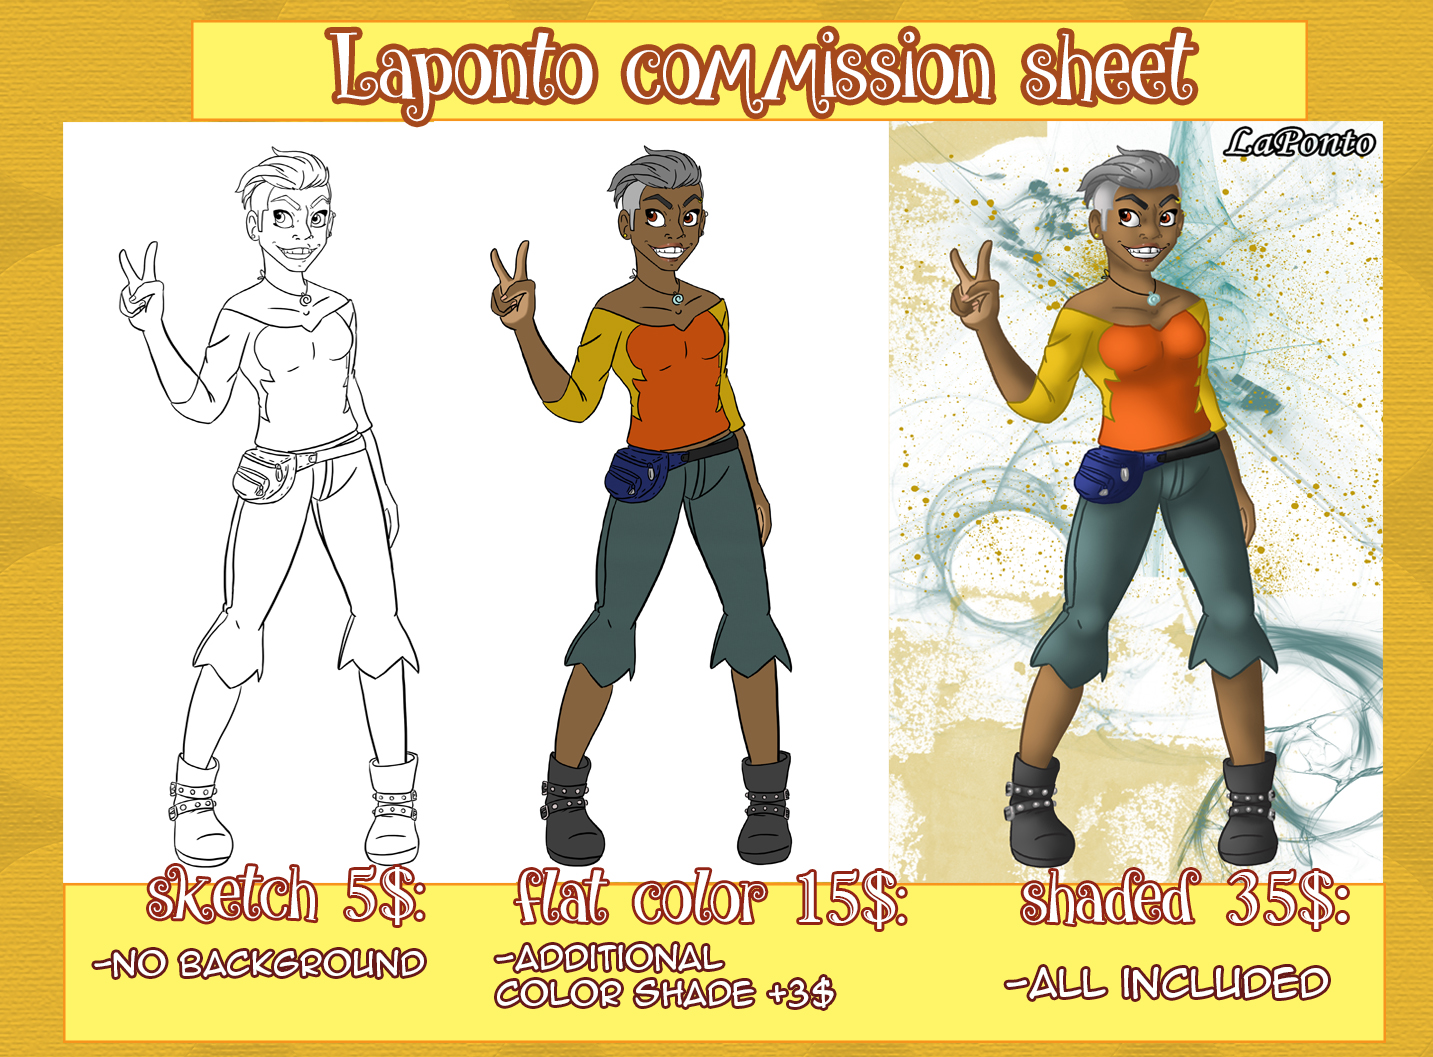 commission sheet 1.jpg